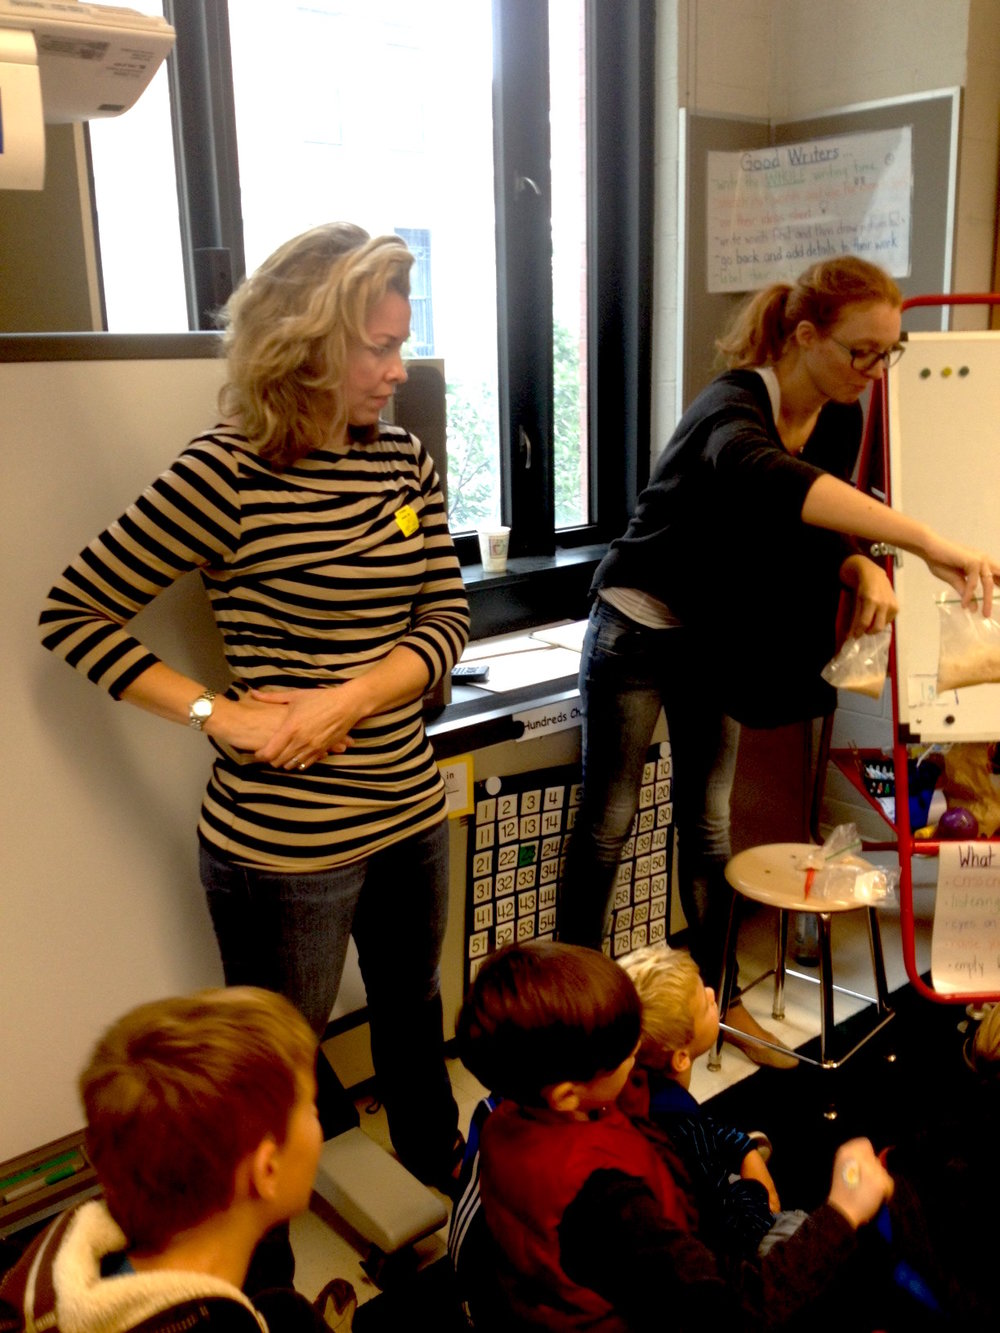 Hands-on Science Demonstrations - Designing and conducting experiments for NYC elementary school students with fellow parent & biologist: Sunniva Stordahl Bjorklund (now in her second career).